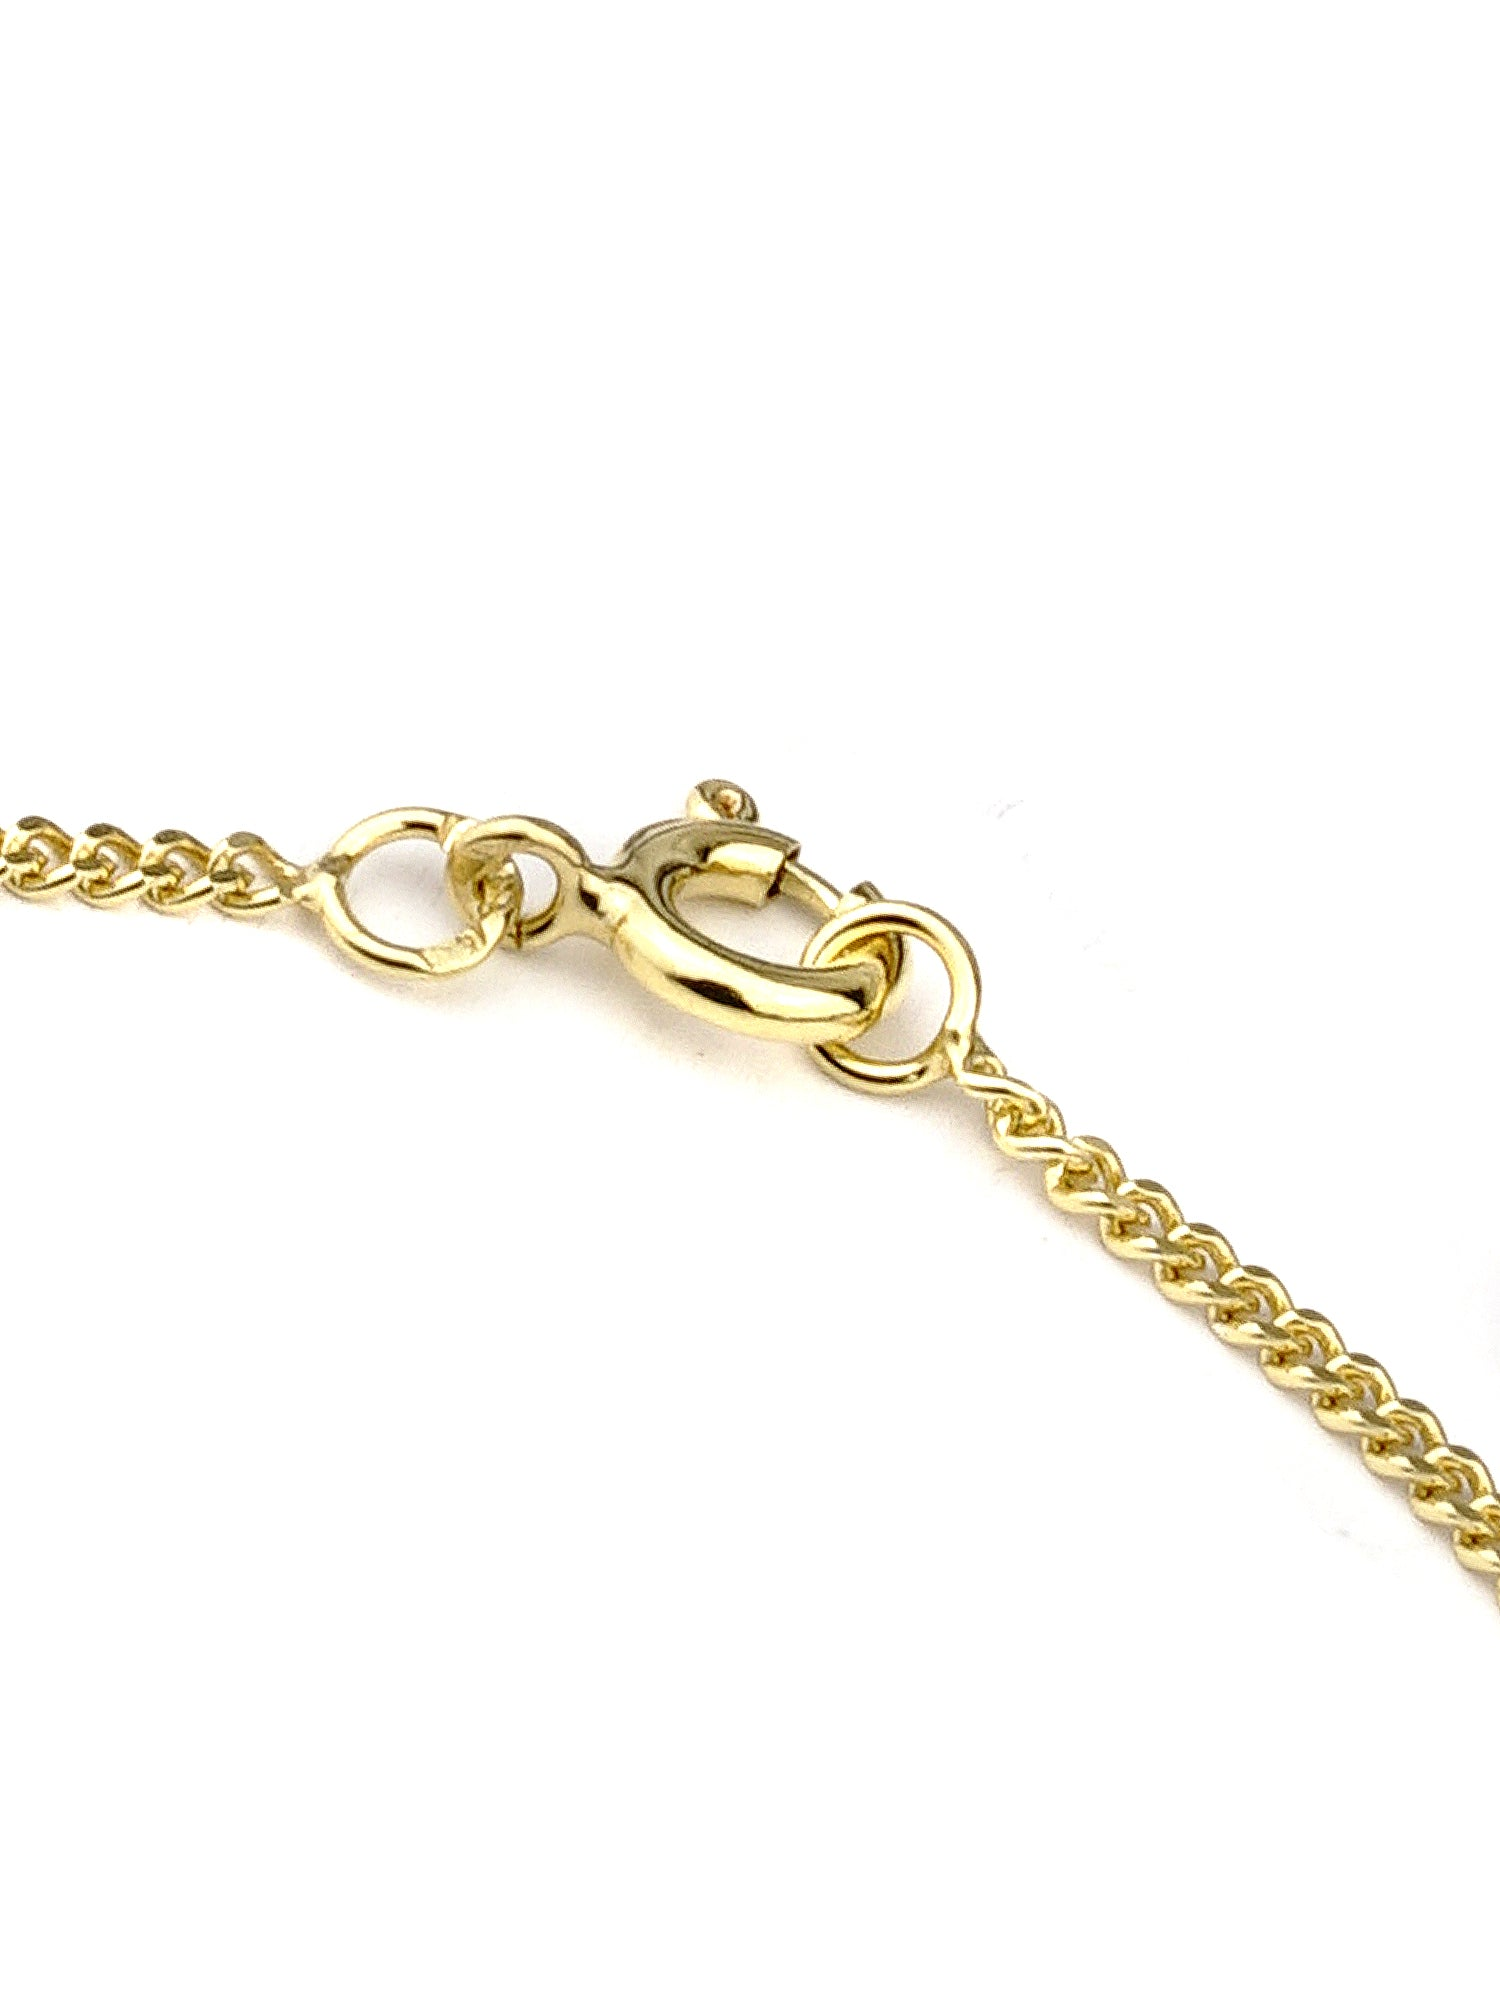 Elodie Necklace - Gold